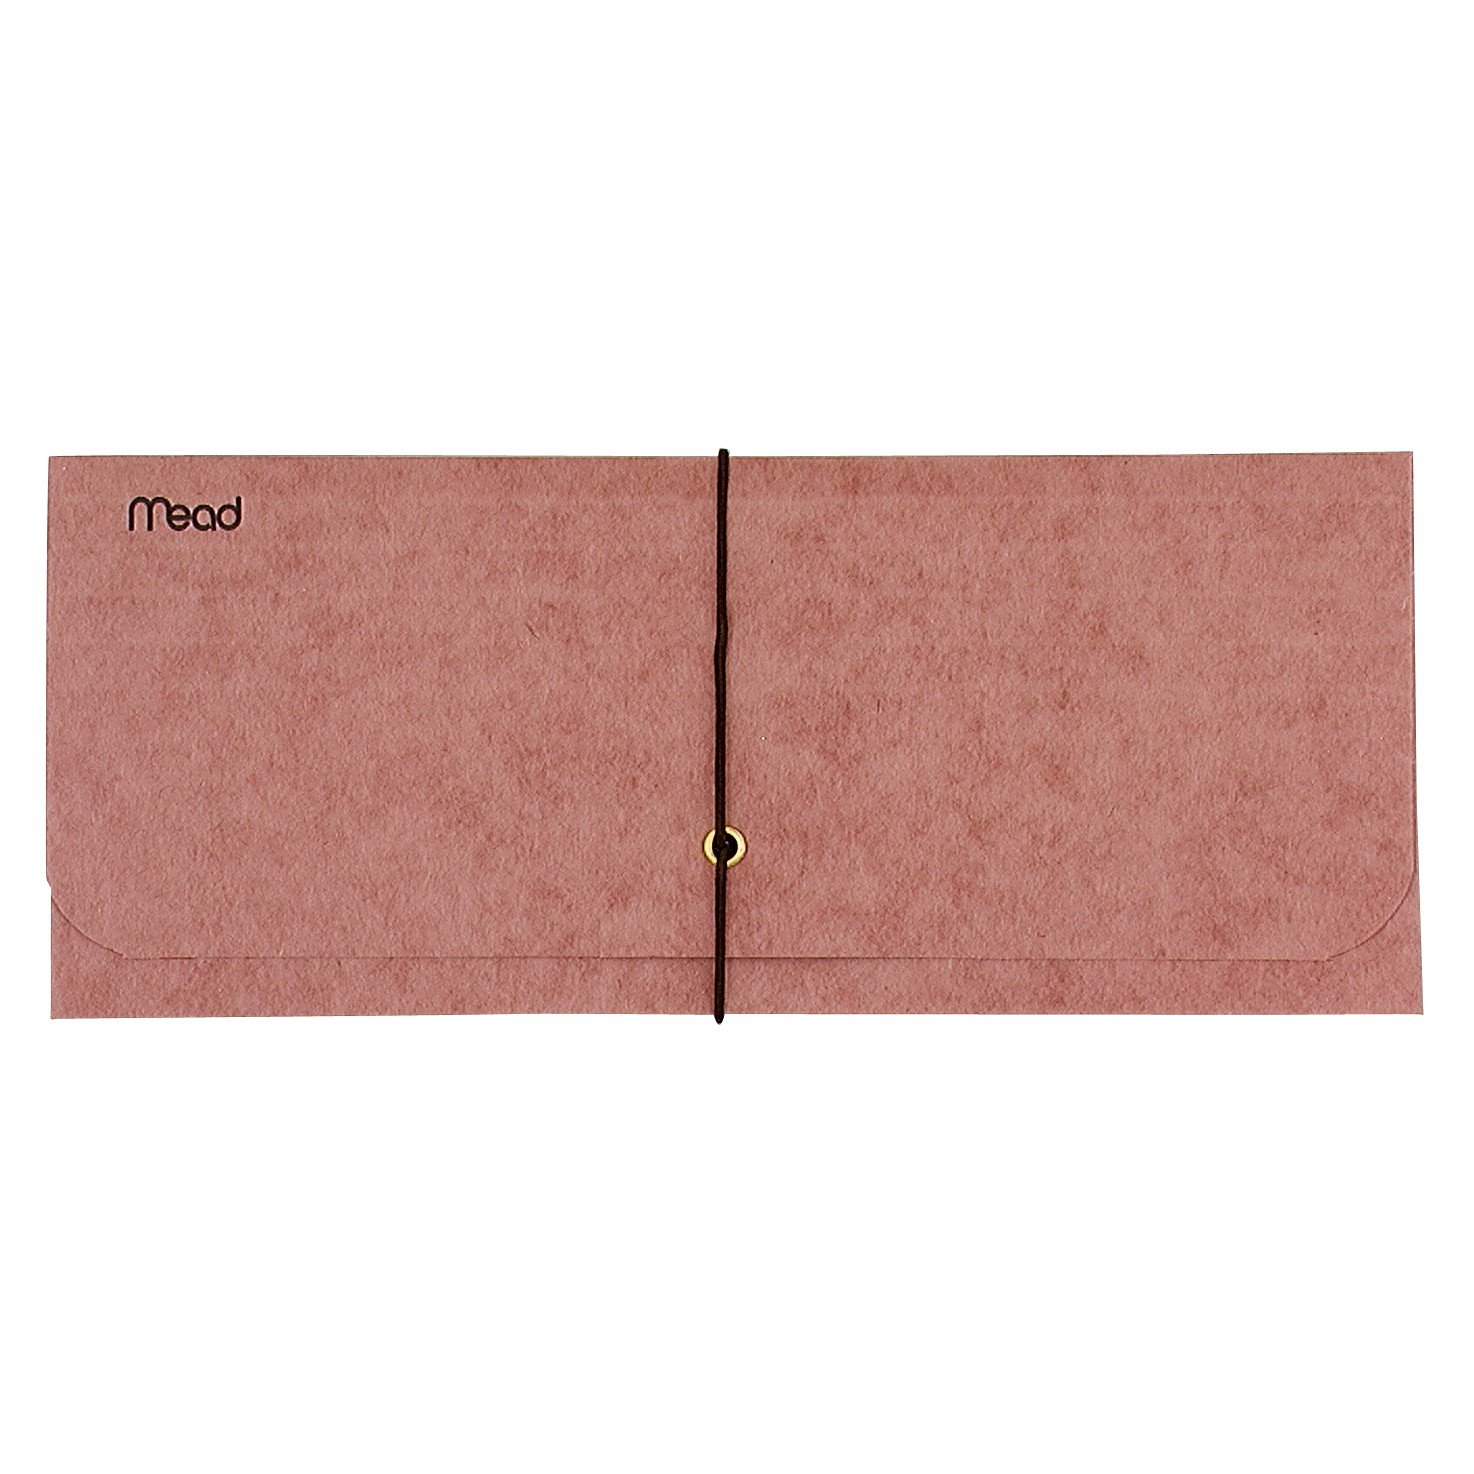 Mead Expanding Check Wallet, Durable, Reddish Brown